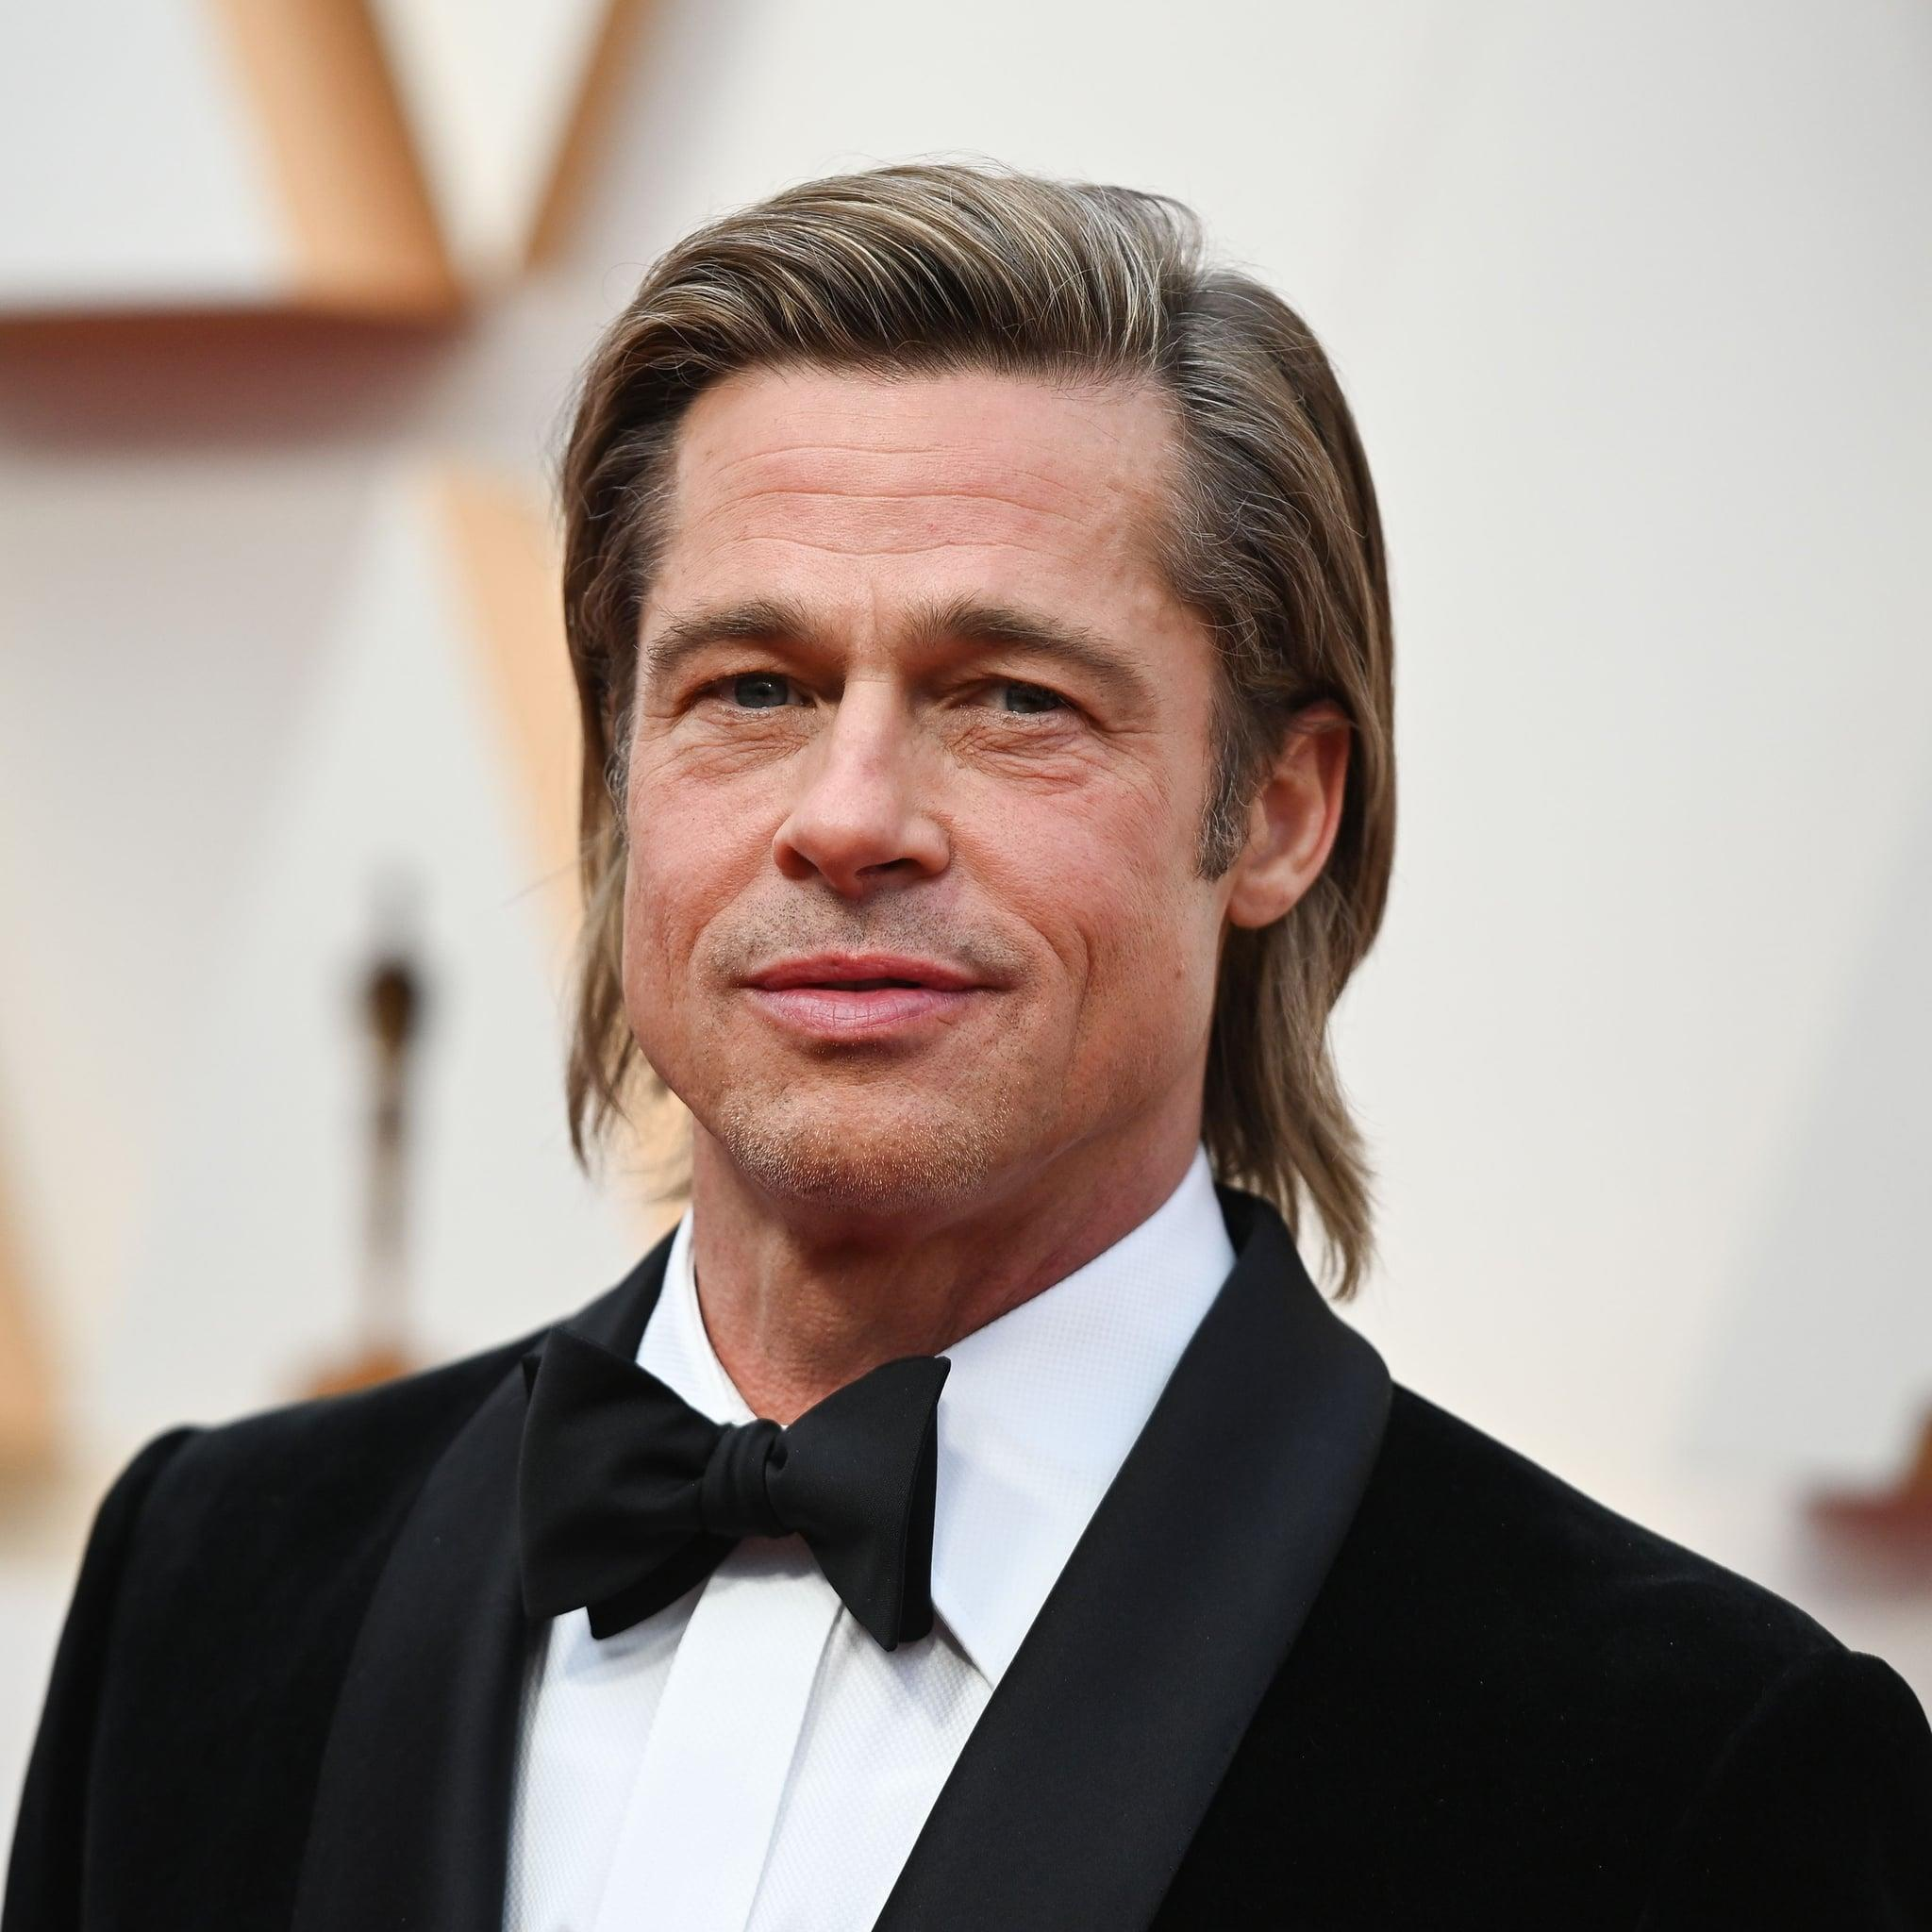 Brad Pitt Is Dating Model Nicole Poturalski As They Re Spotted Vacationing In France